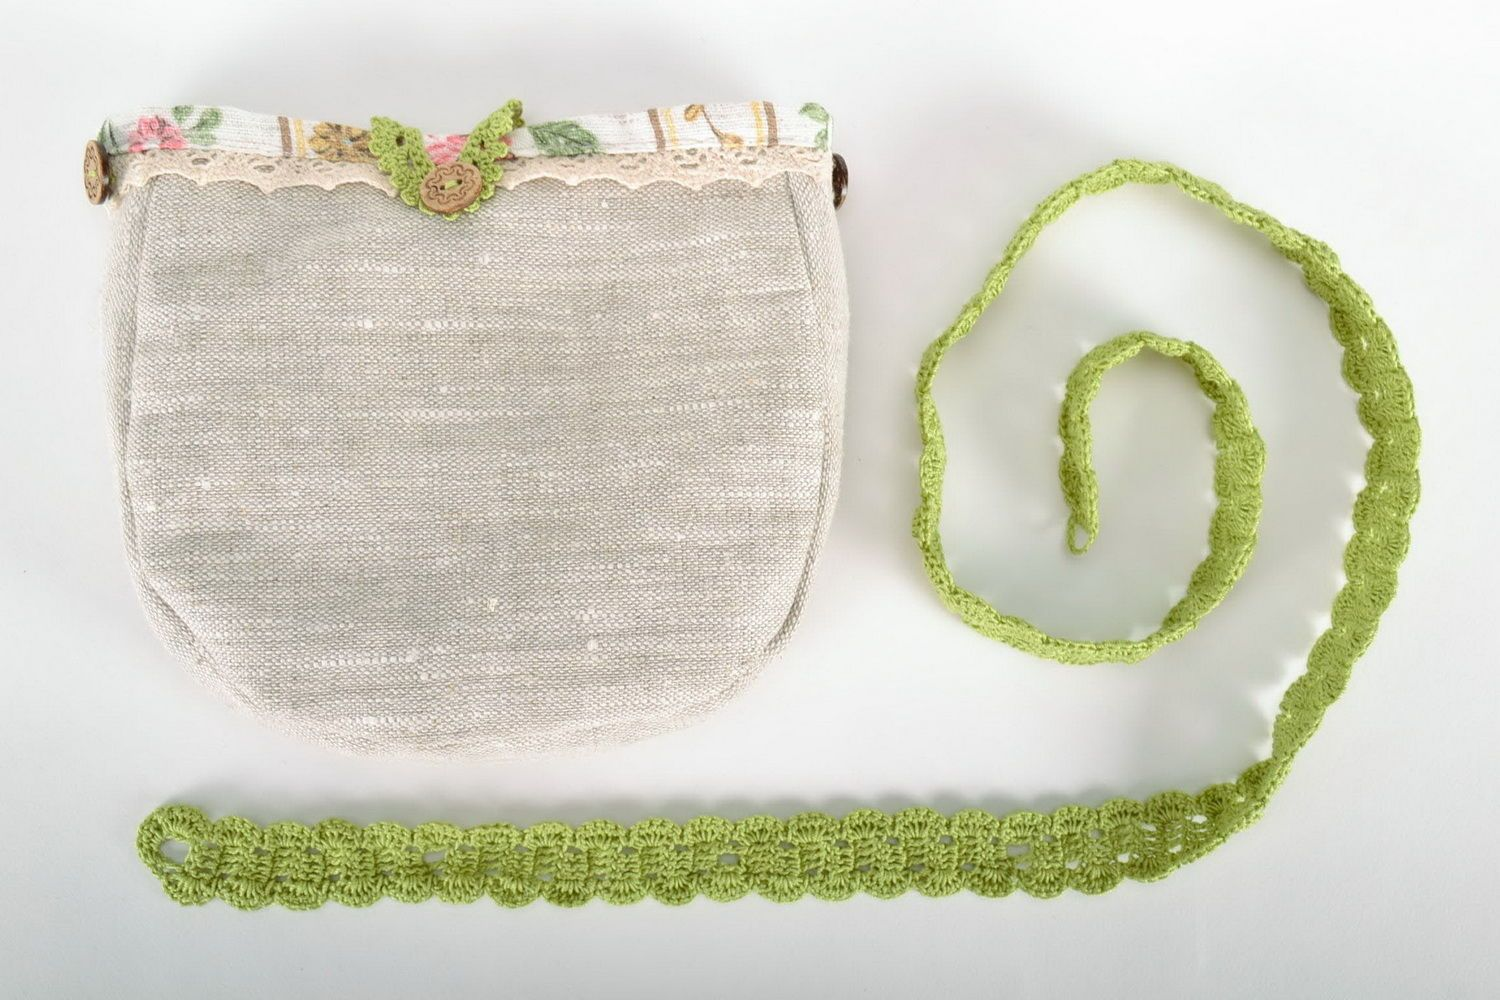 Bag made from flax and cotton  photo 4